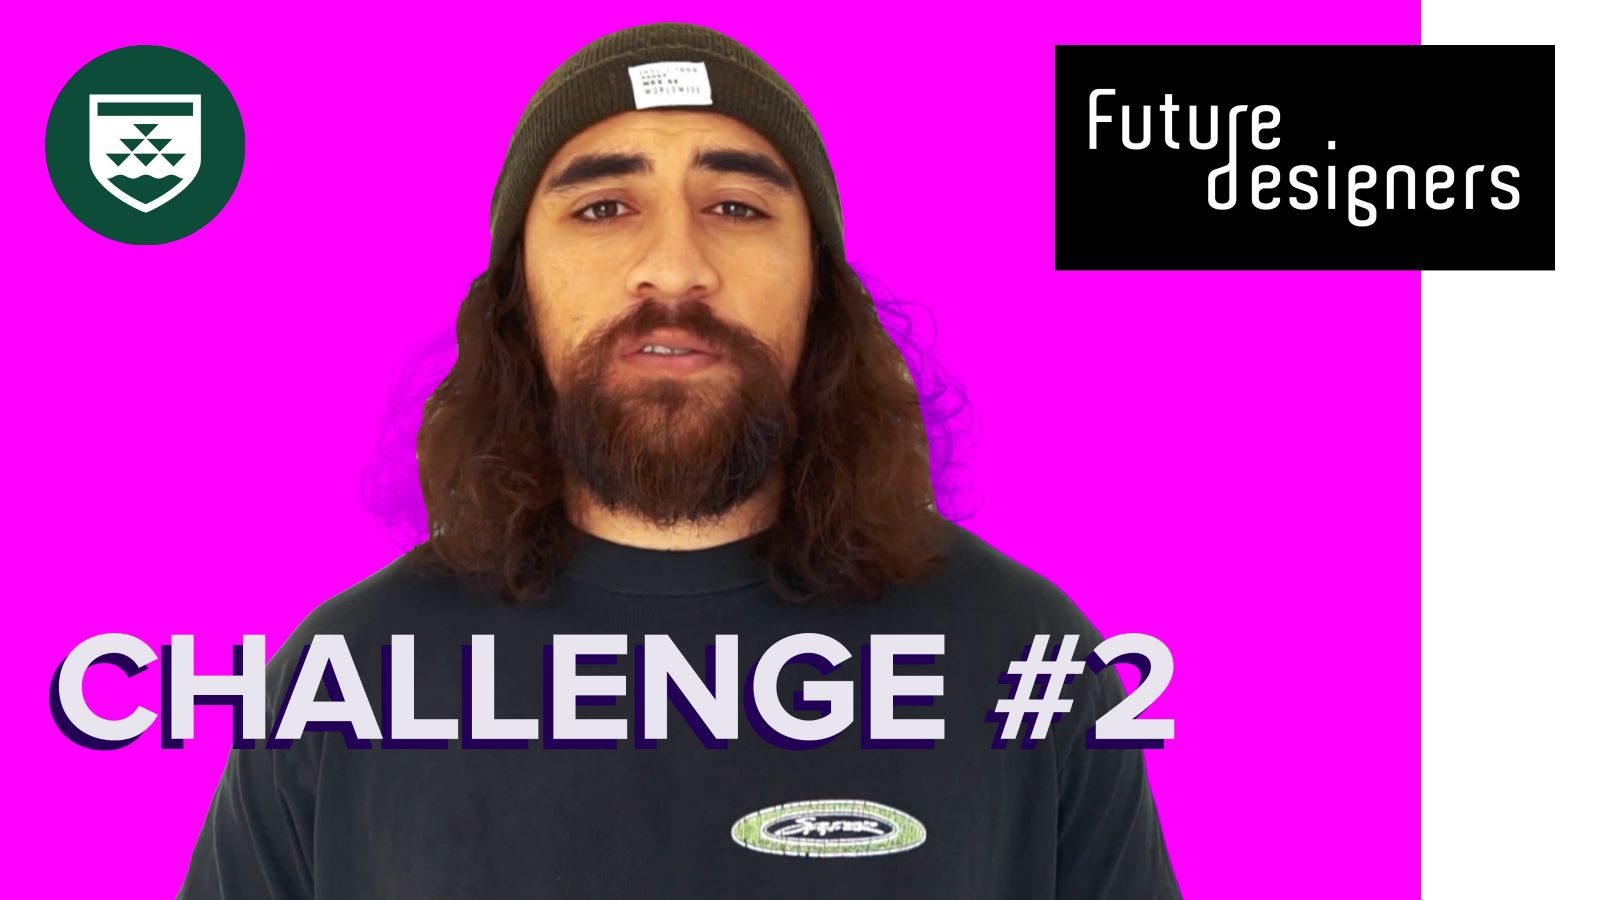 Youtube video image – 'future designers challenge 2'.